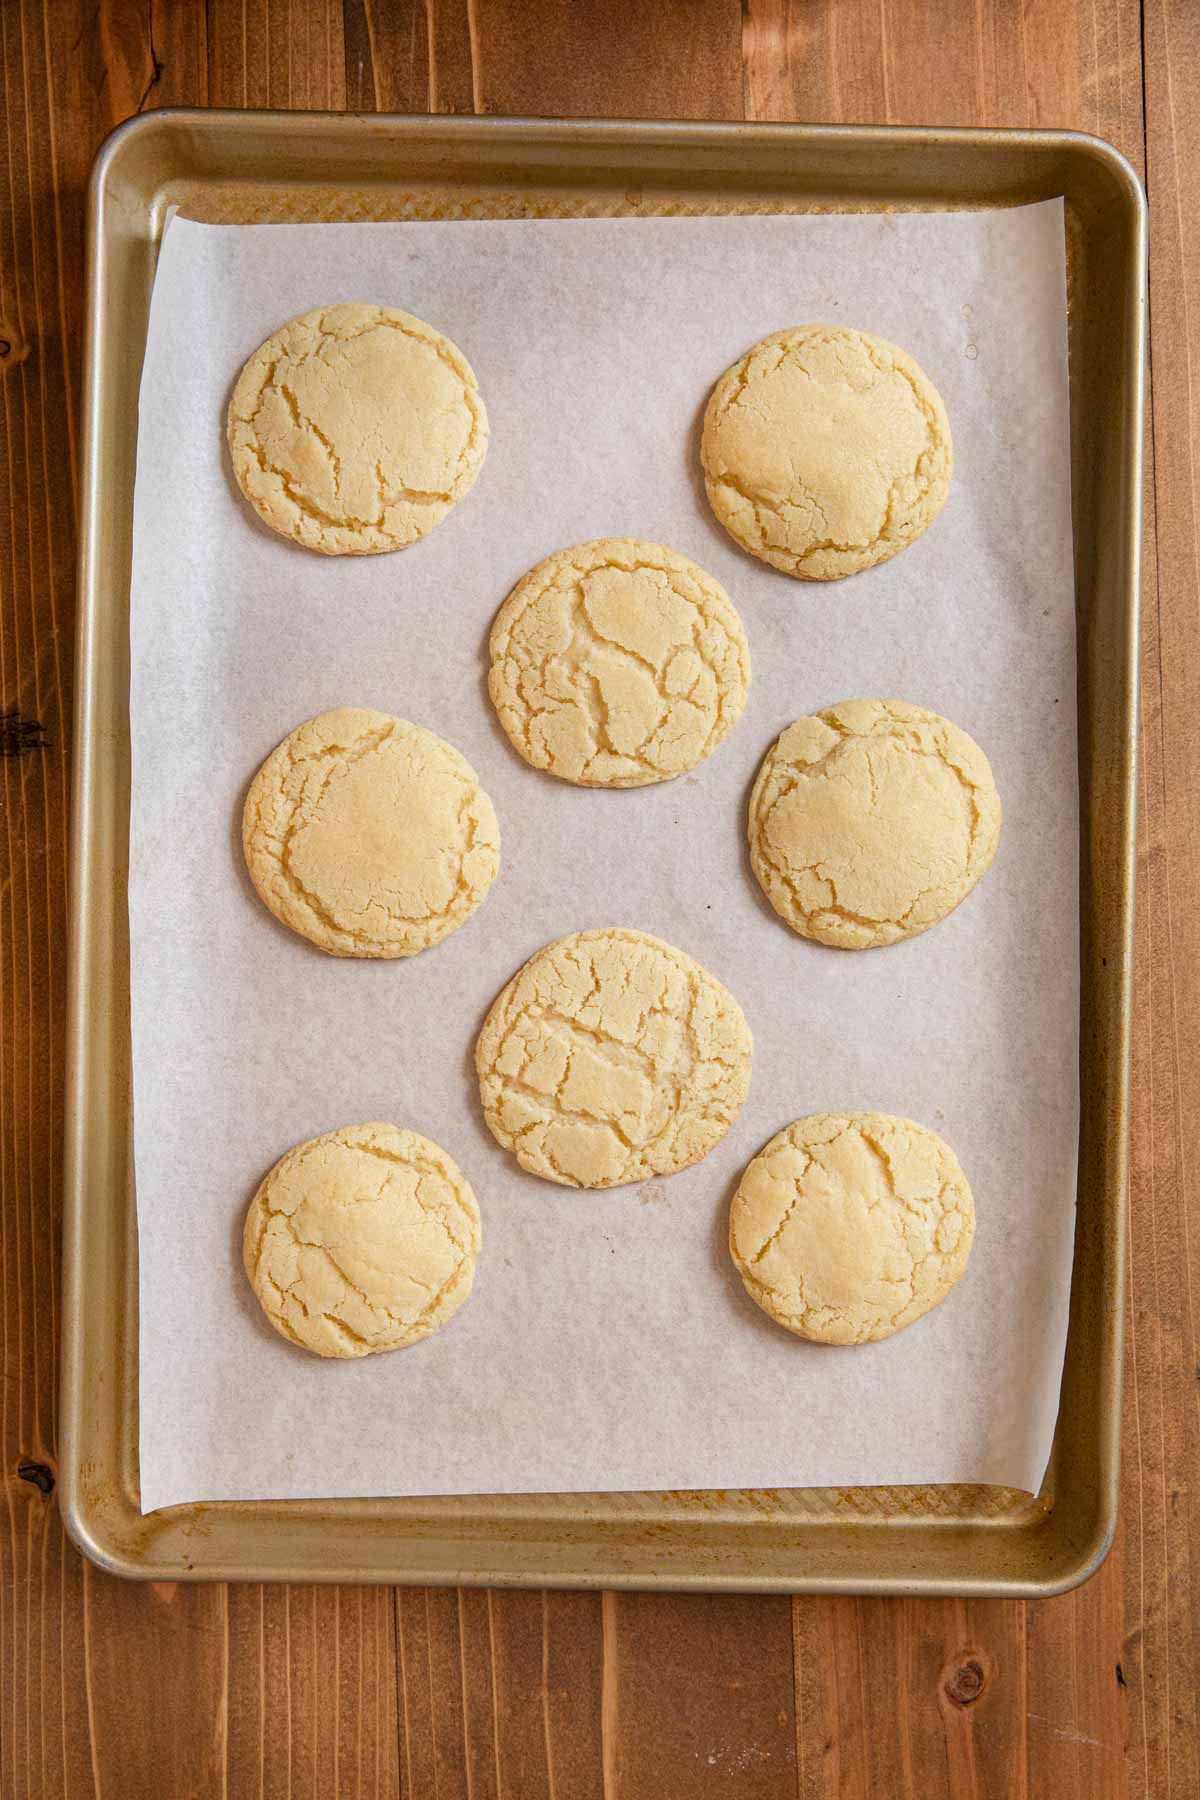 tray of cooked sugar cookies